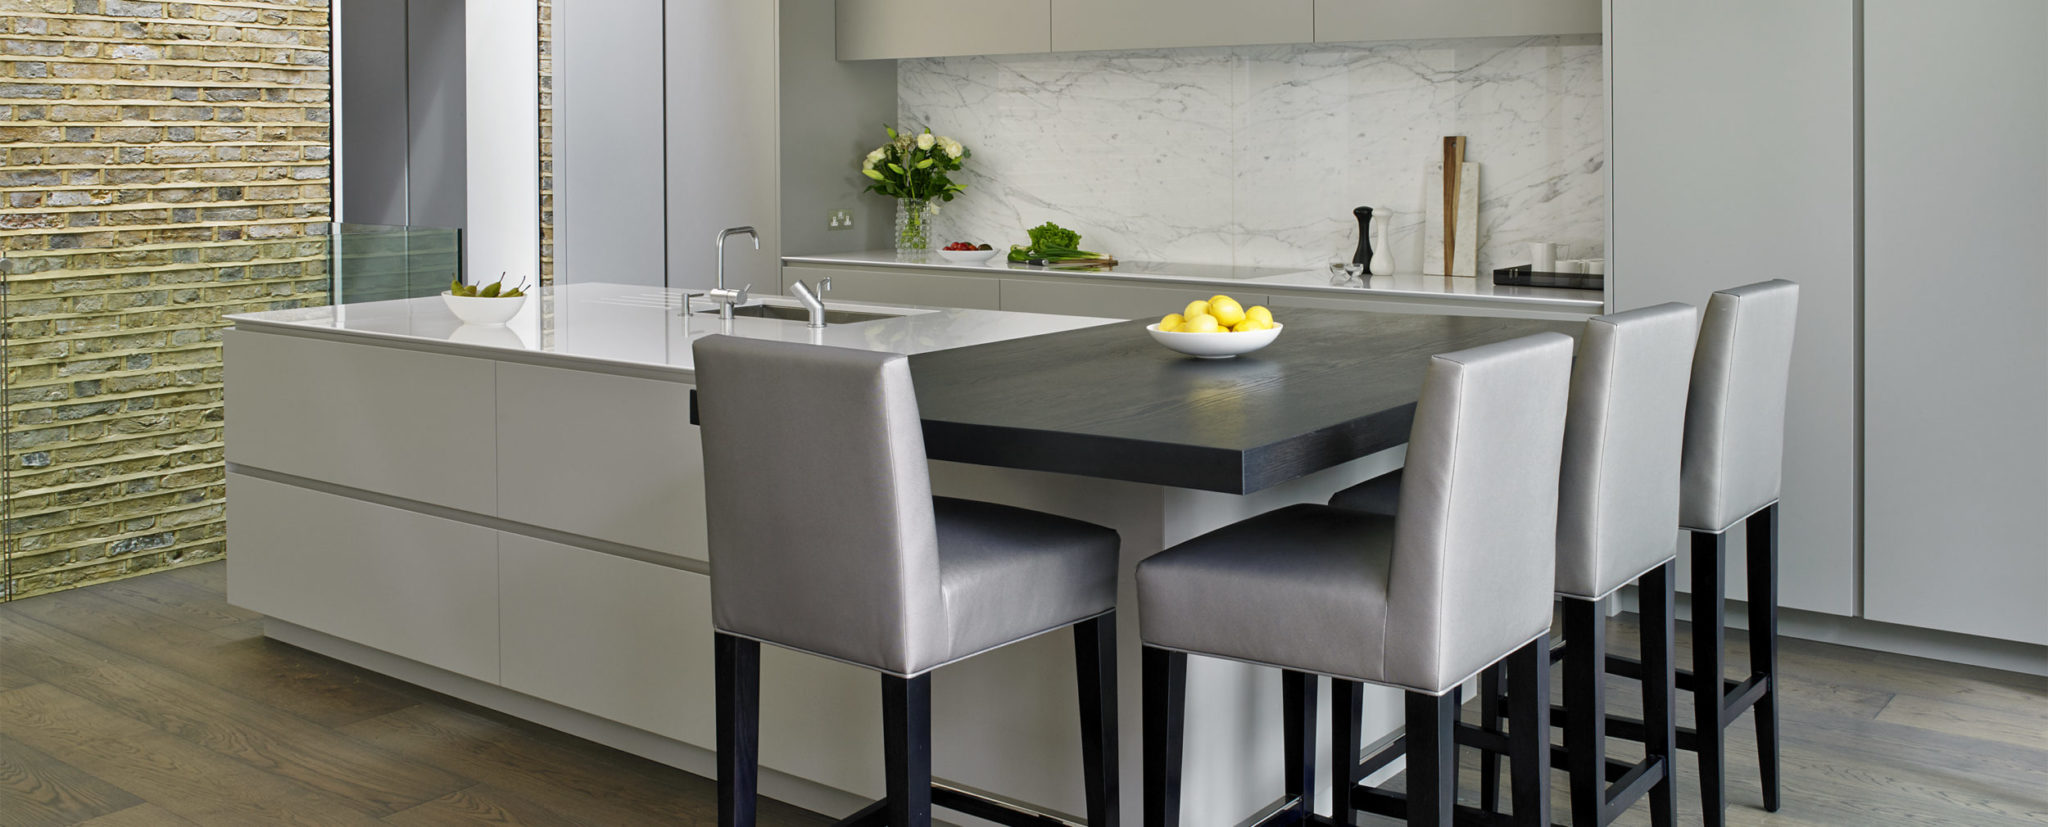 Handless kitchen design with silver matt grey lacquered cabinets with large island and attached elevated breakfast bar in charcoal oak with custom made upholstered stool seating